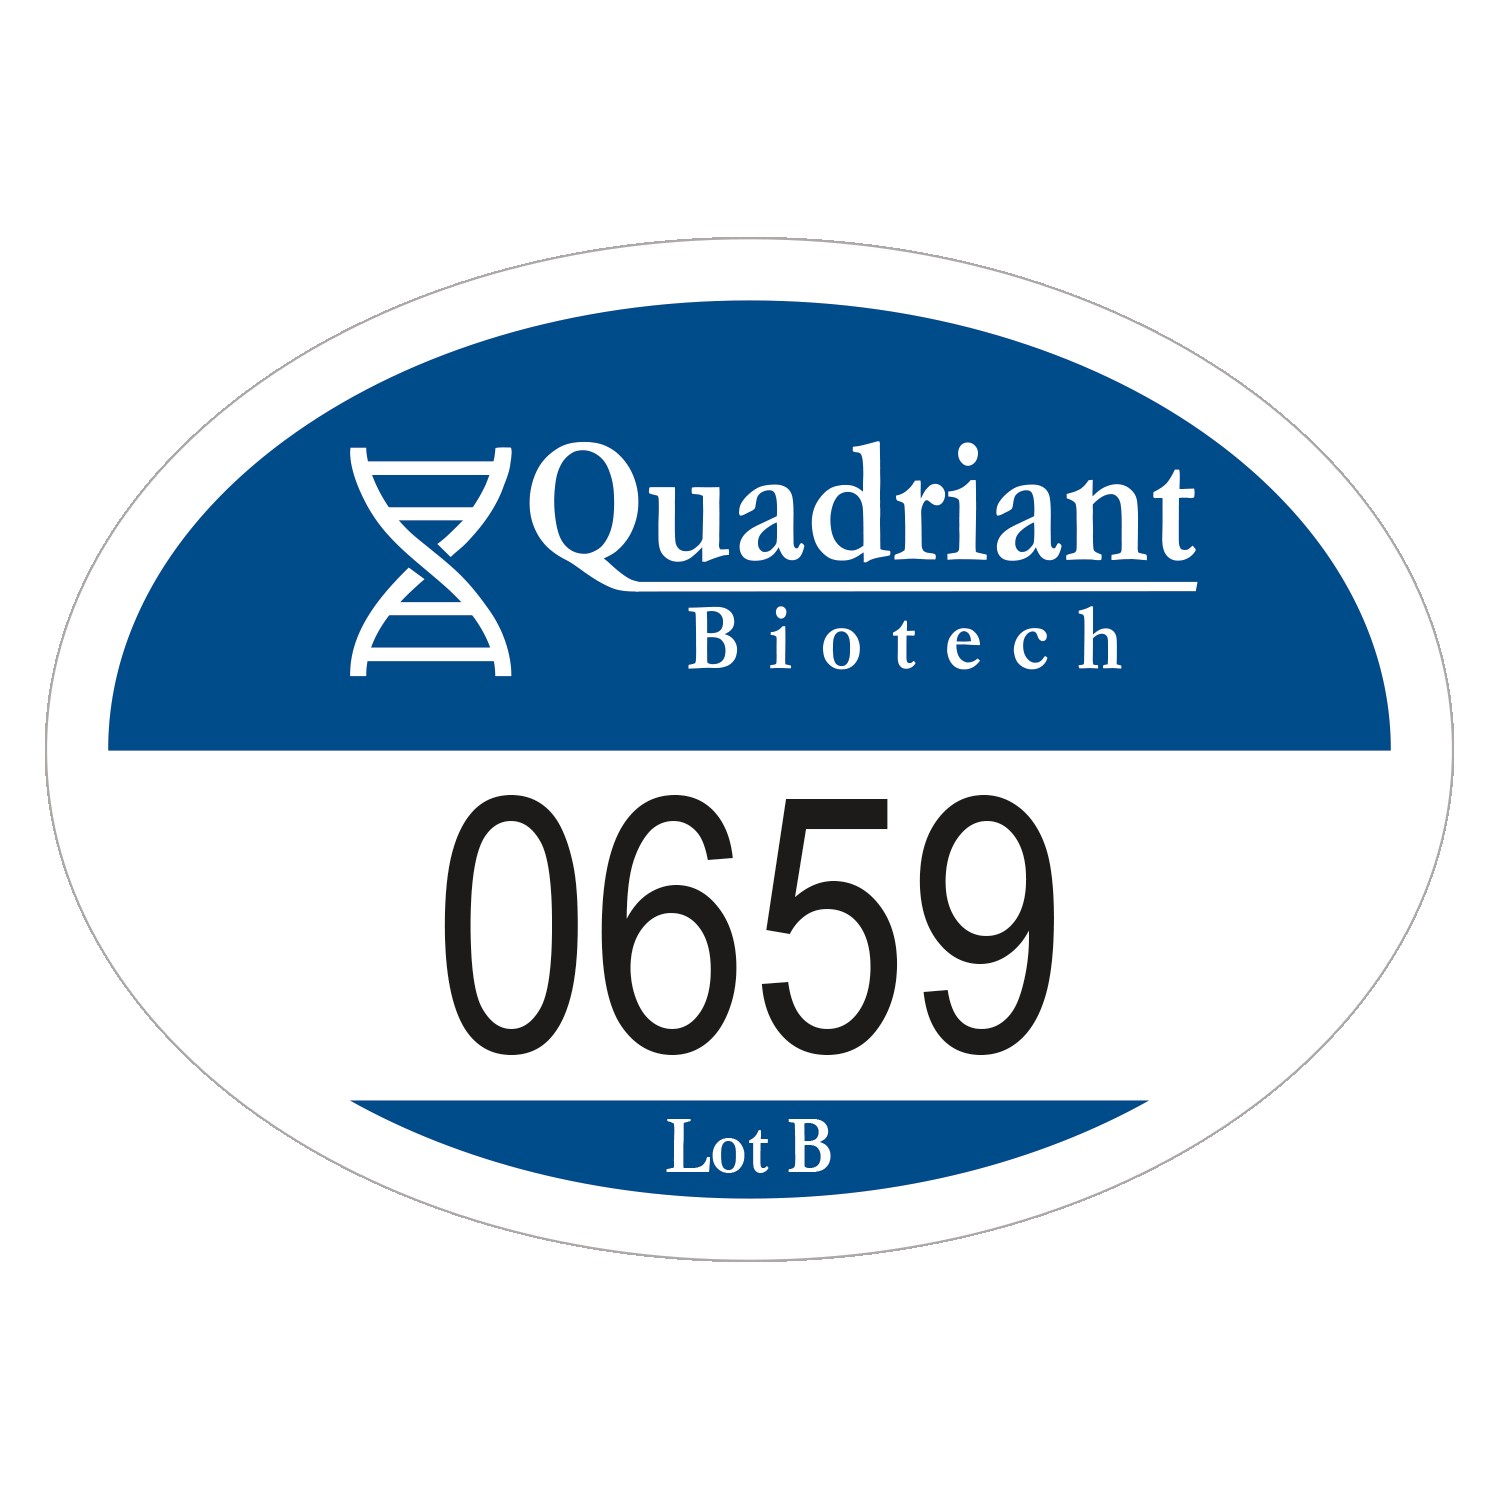 "915489563-183 - Oval White Reflective Outside Parking Permit Decal (2""x2 3/4"") - thumbnail"